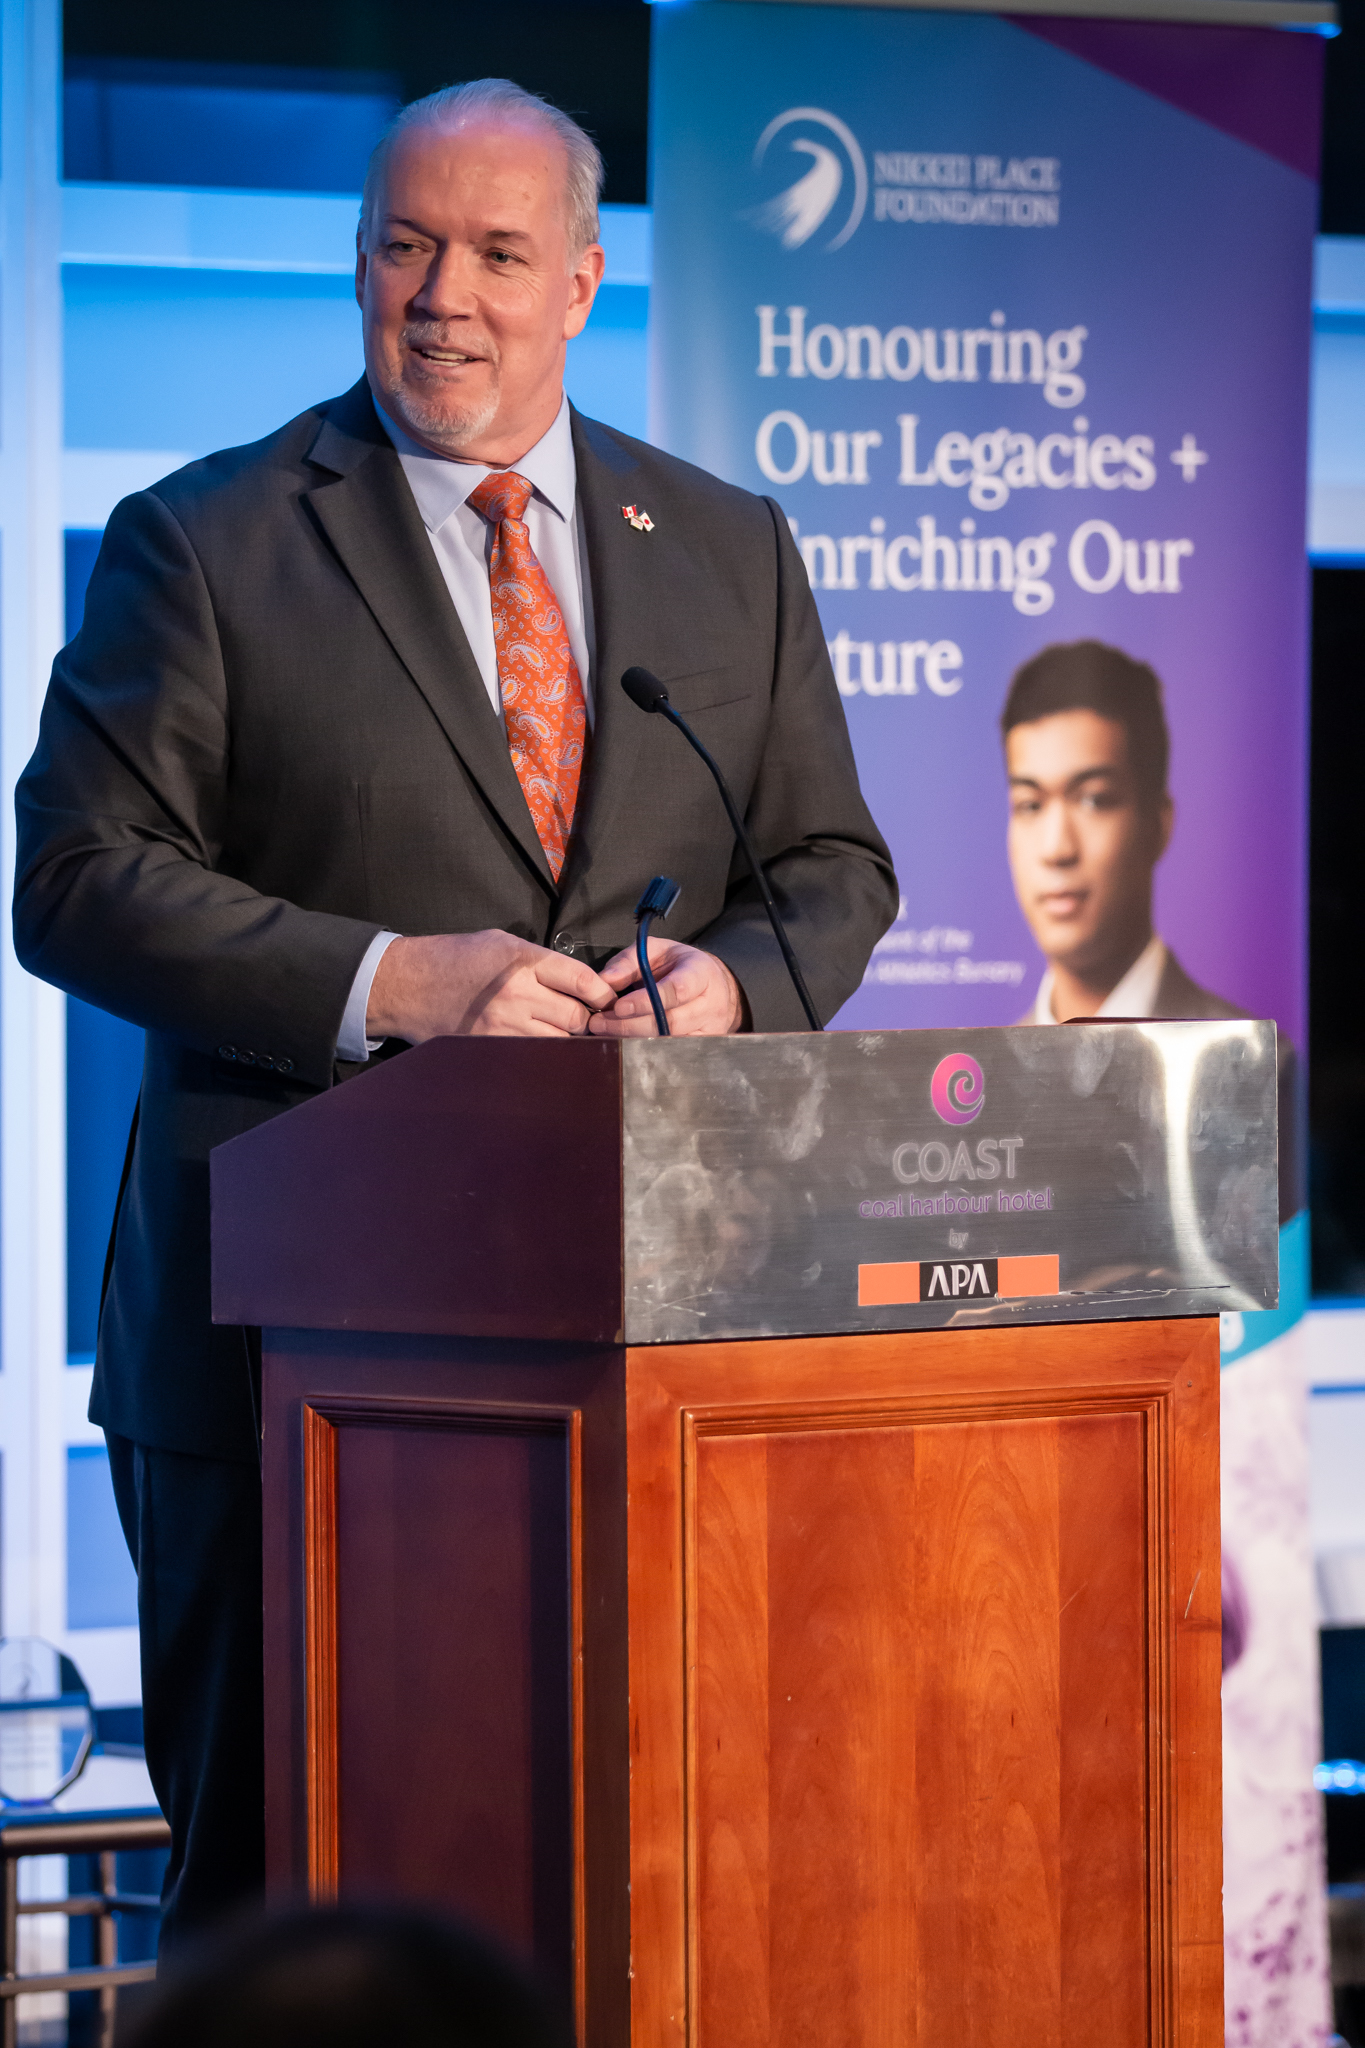 Keynote Speech by Premier John Horgan